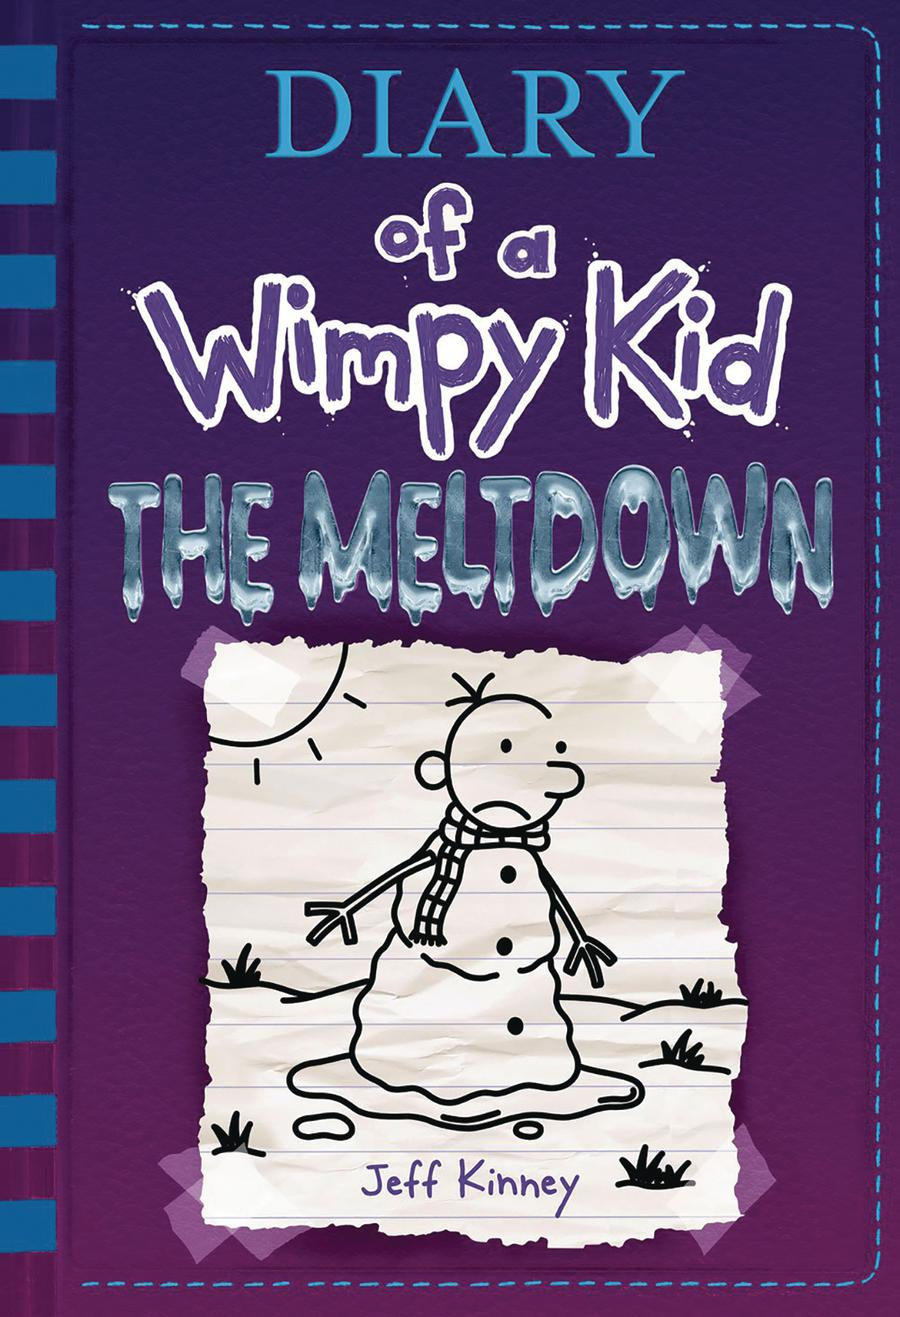 Diary Of A Wimpy Kid Vol 13 Meltdown HC